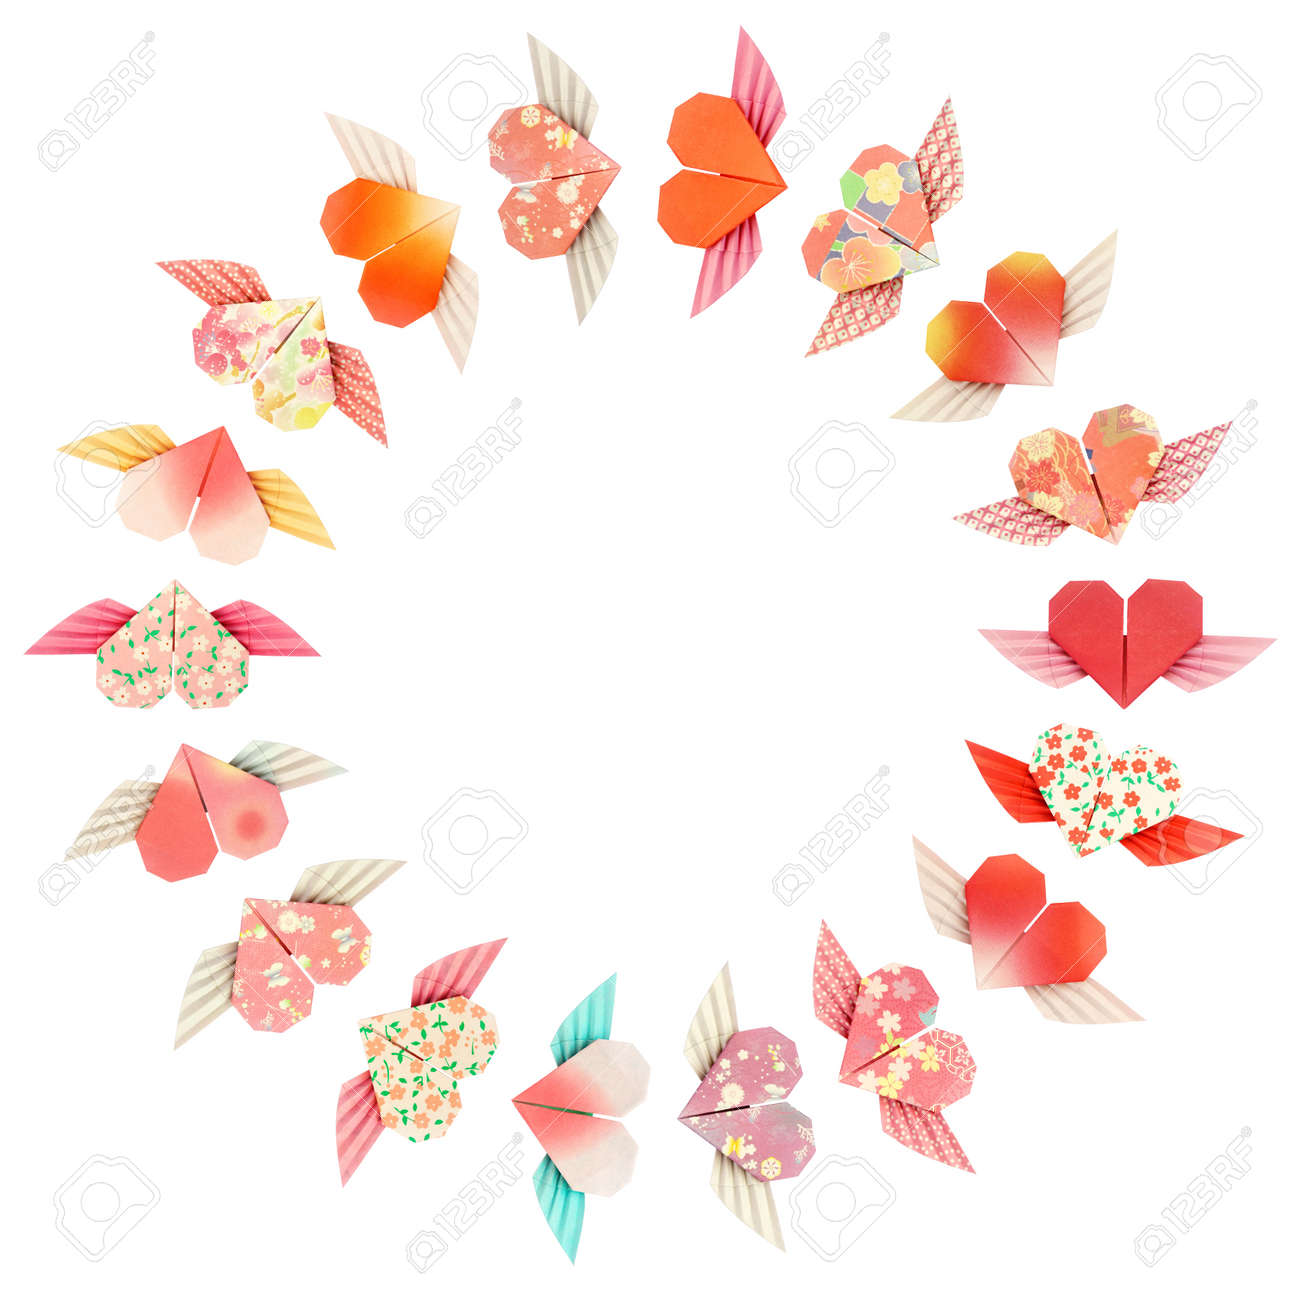 Paper folded winged-hearts arranged in a circle shape, isolated on a white background Stock Photo - 6357155